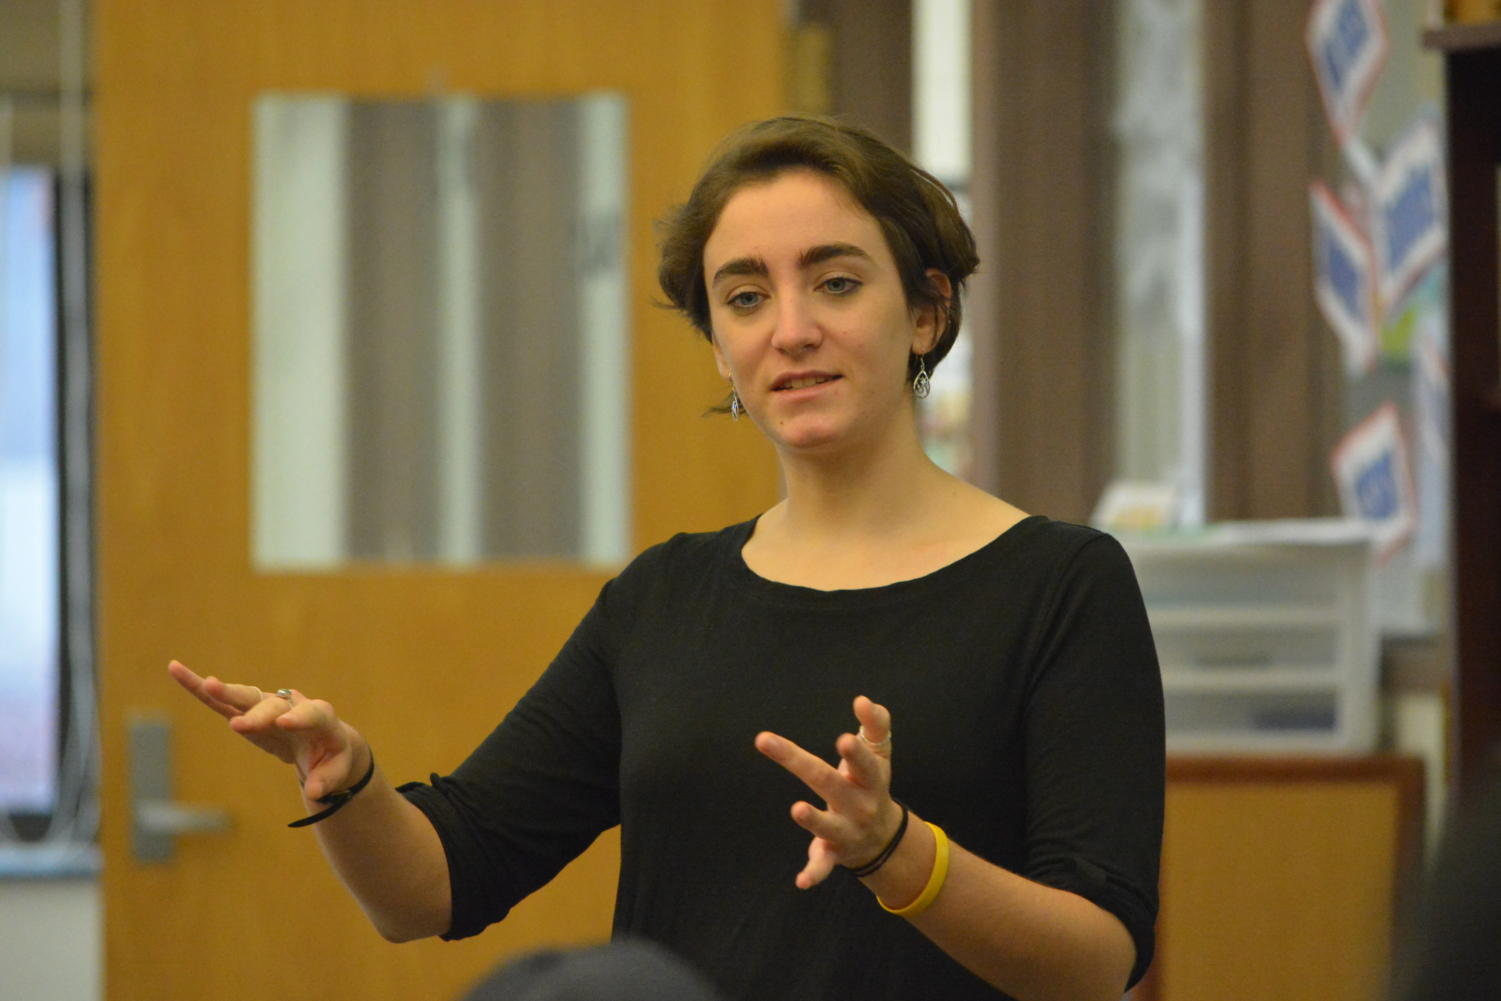 Indonesia comes to Farmington -- 2011 alumna Corin Seguljic speaks about her experience in the Peace Corps as an English teacher in Java, Indonesia and the differences between culture, education systems, and traditions between America and Indonesia, on December 22 in the library during lunch waves. Within the Peace Corps, education is the largest sector with about 40 percent of volunteers working in education.